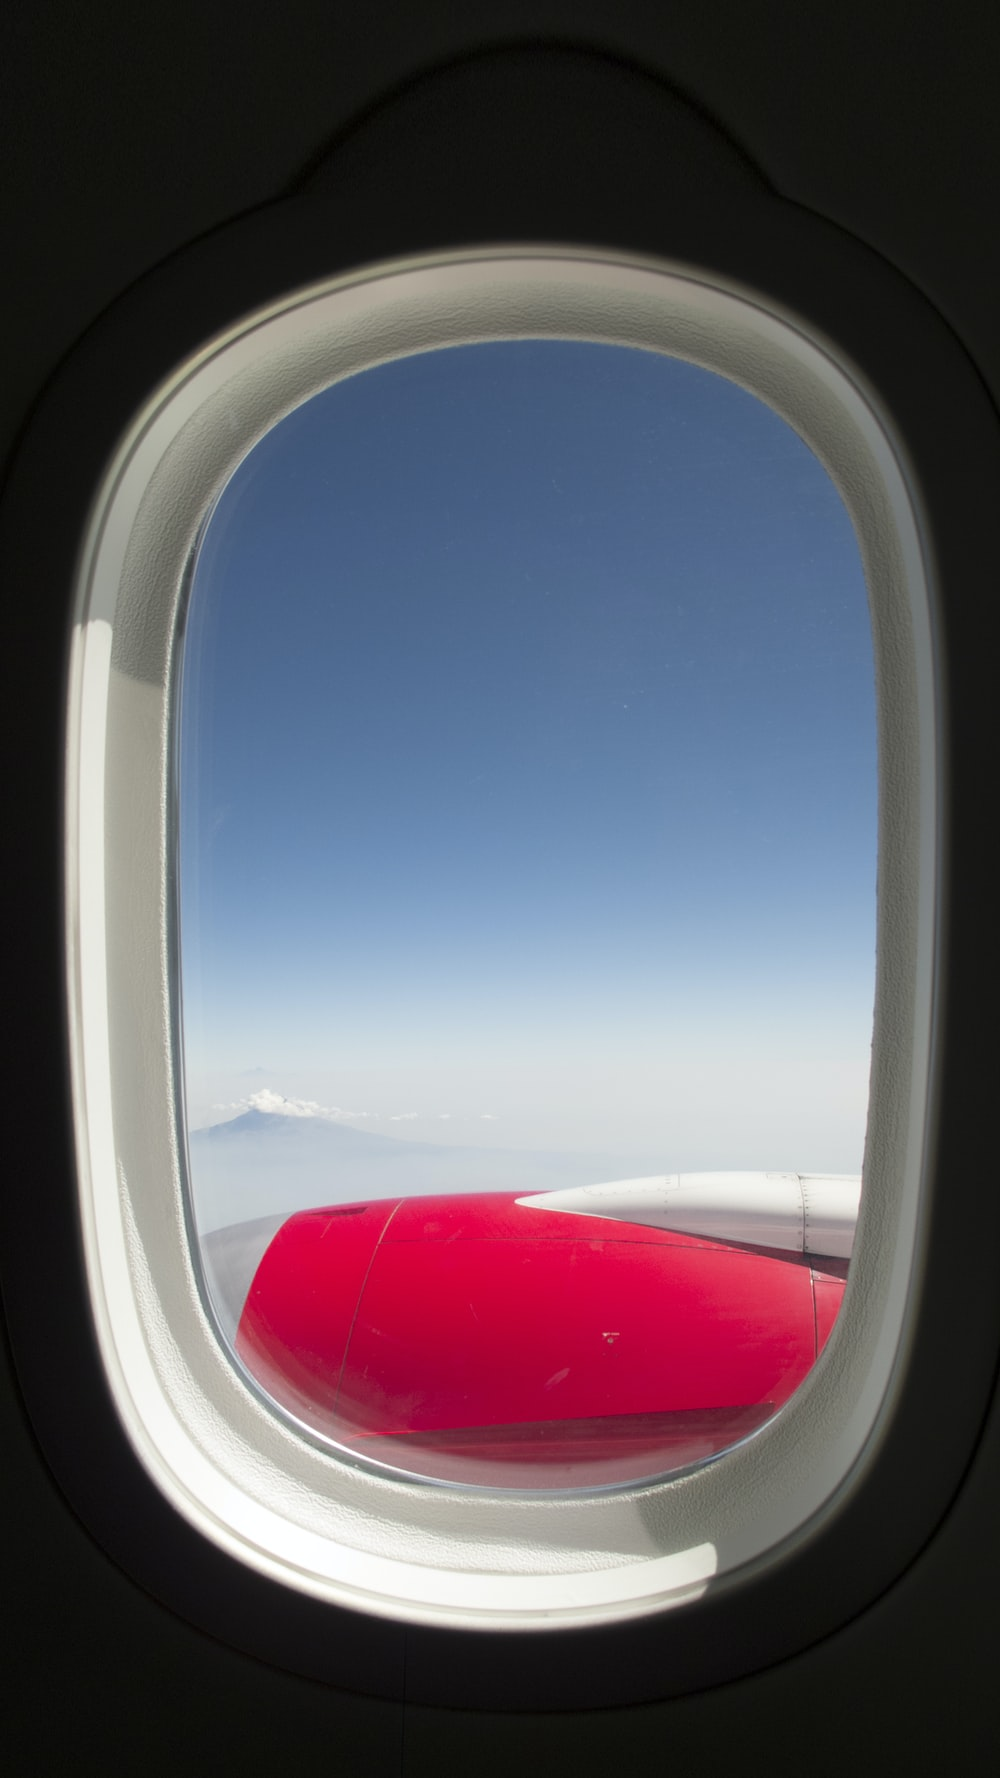 white and red airplane wing during daytime